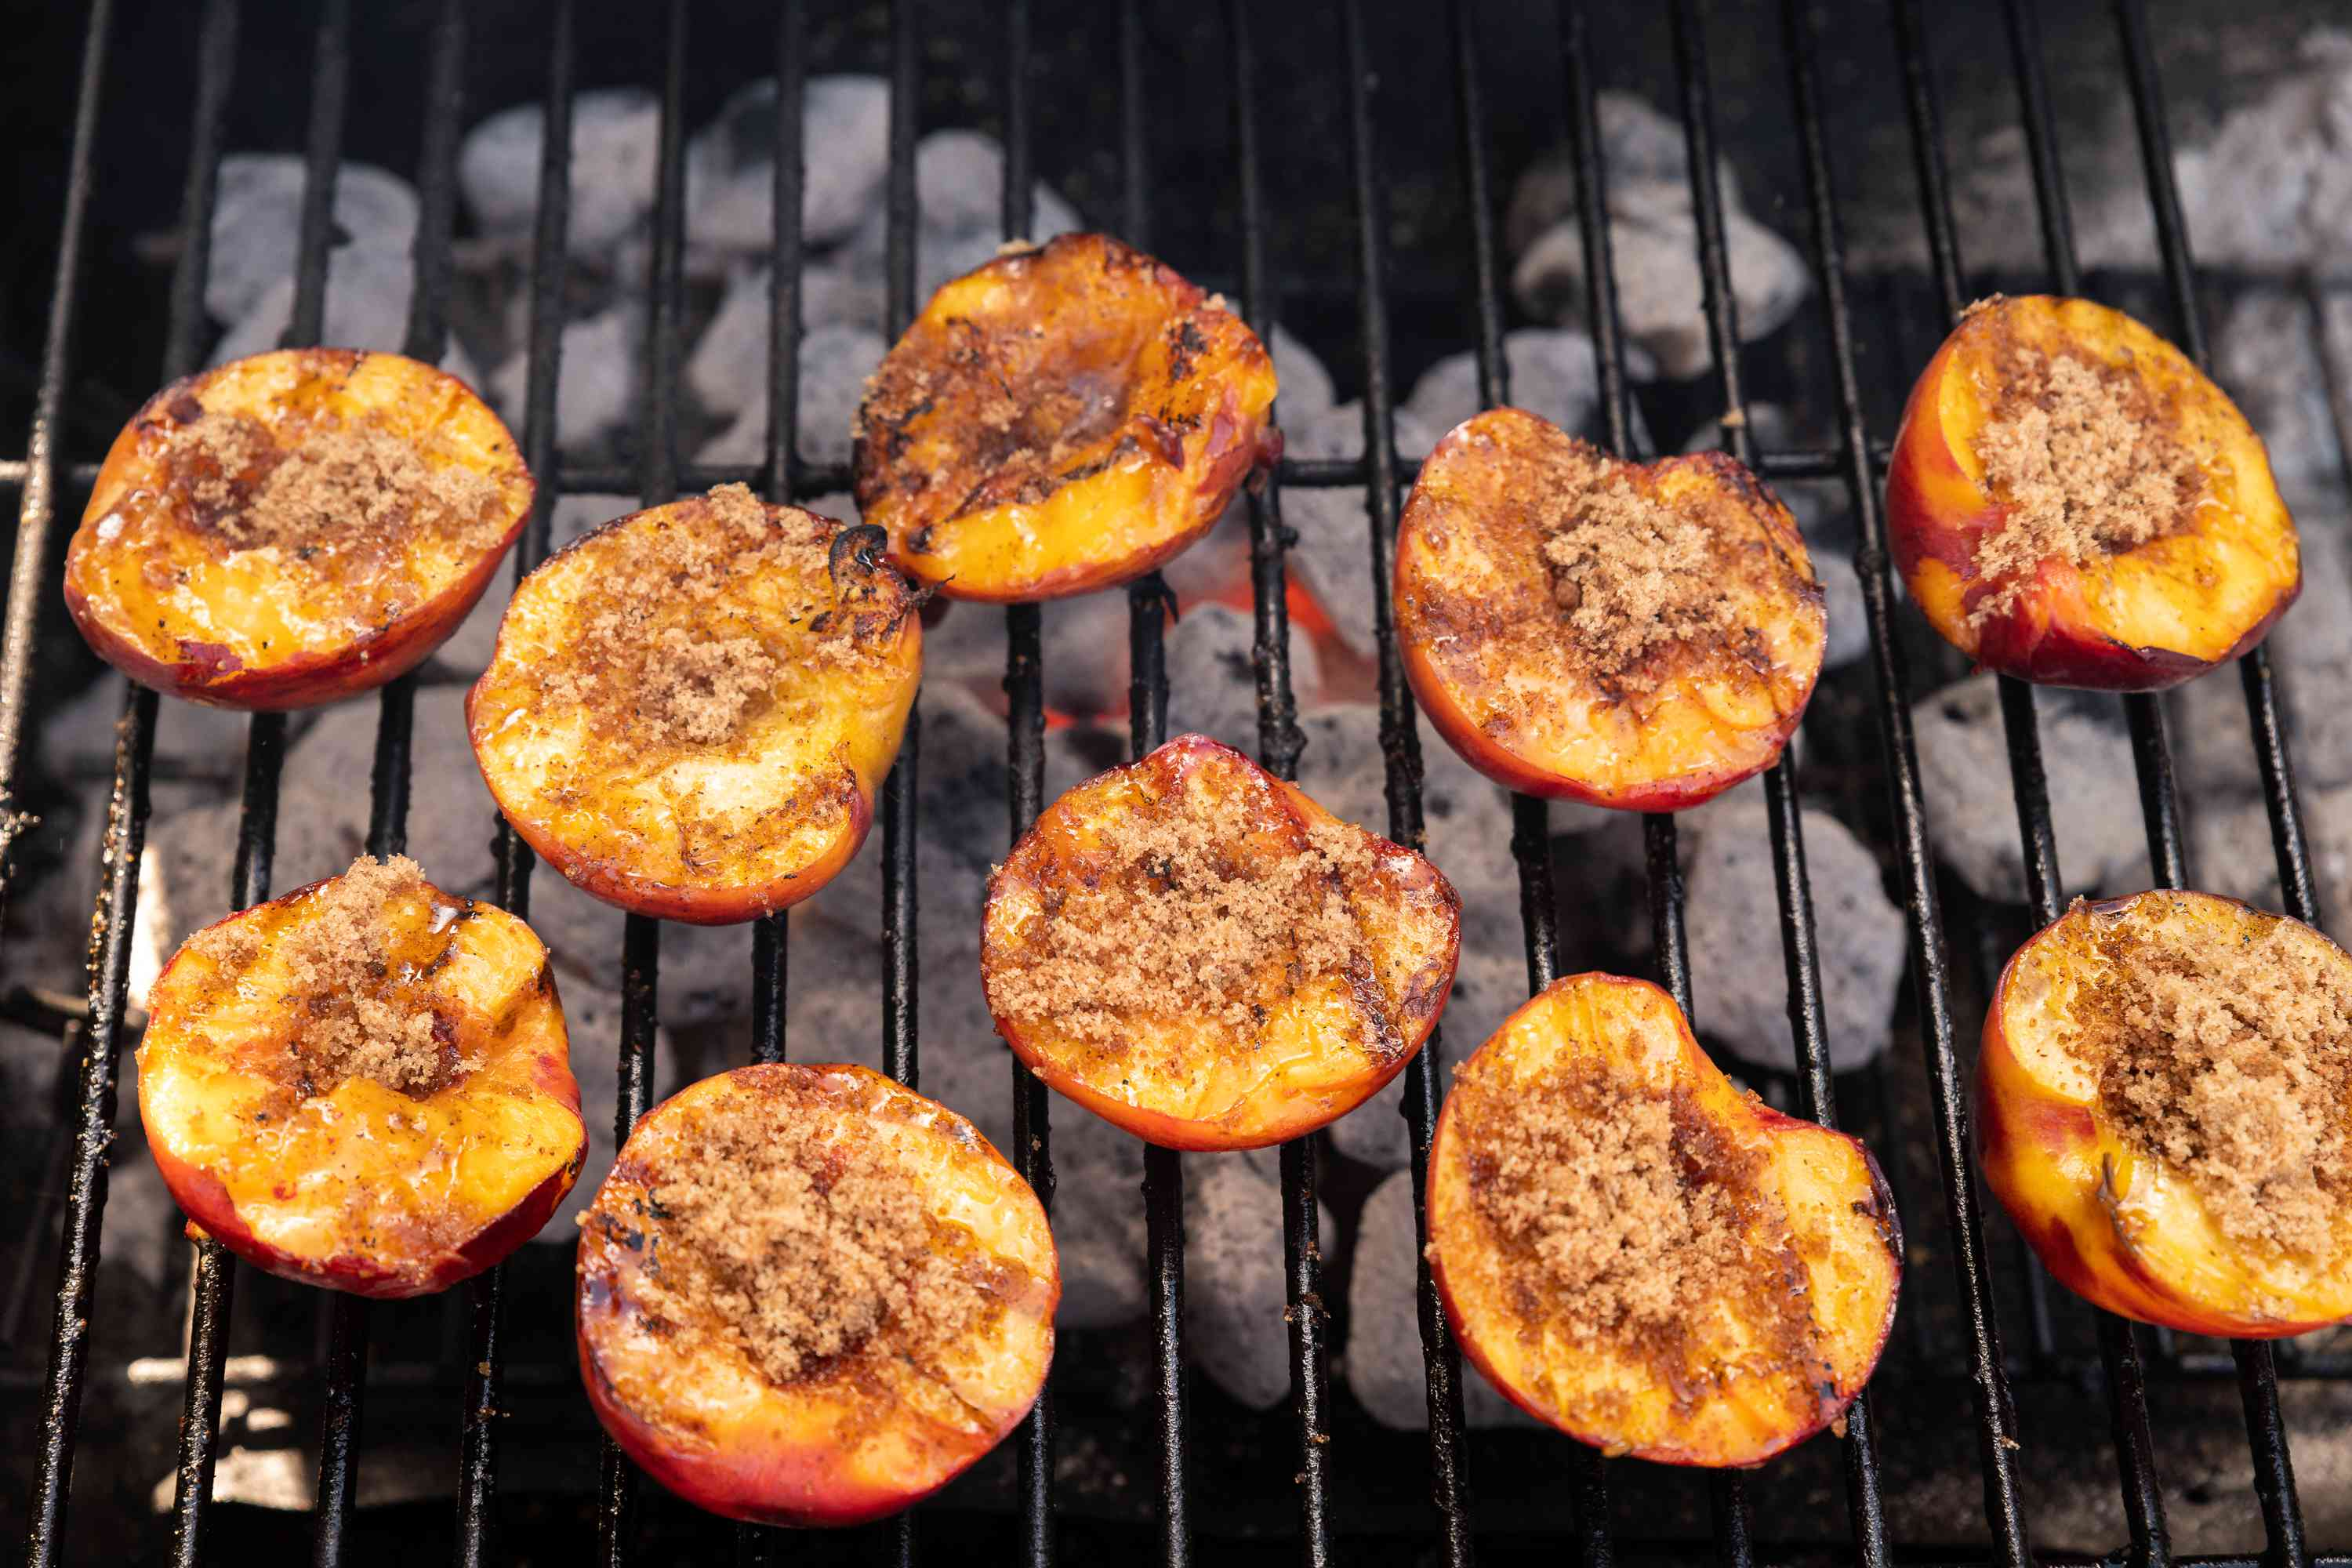 flip the peach halves over on the grill, sprinkle with the cinnamon and sugar